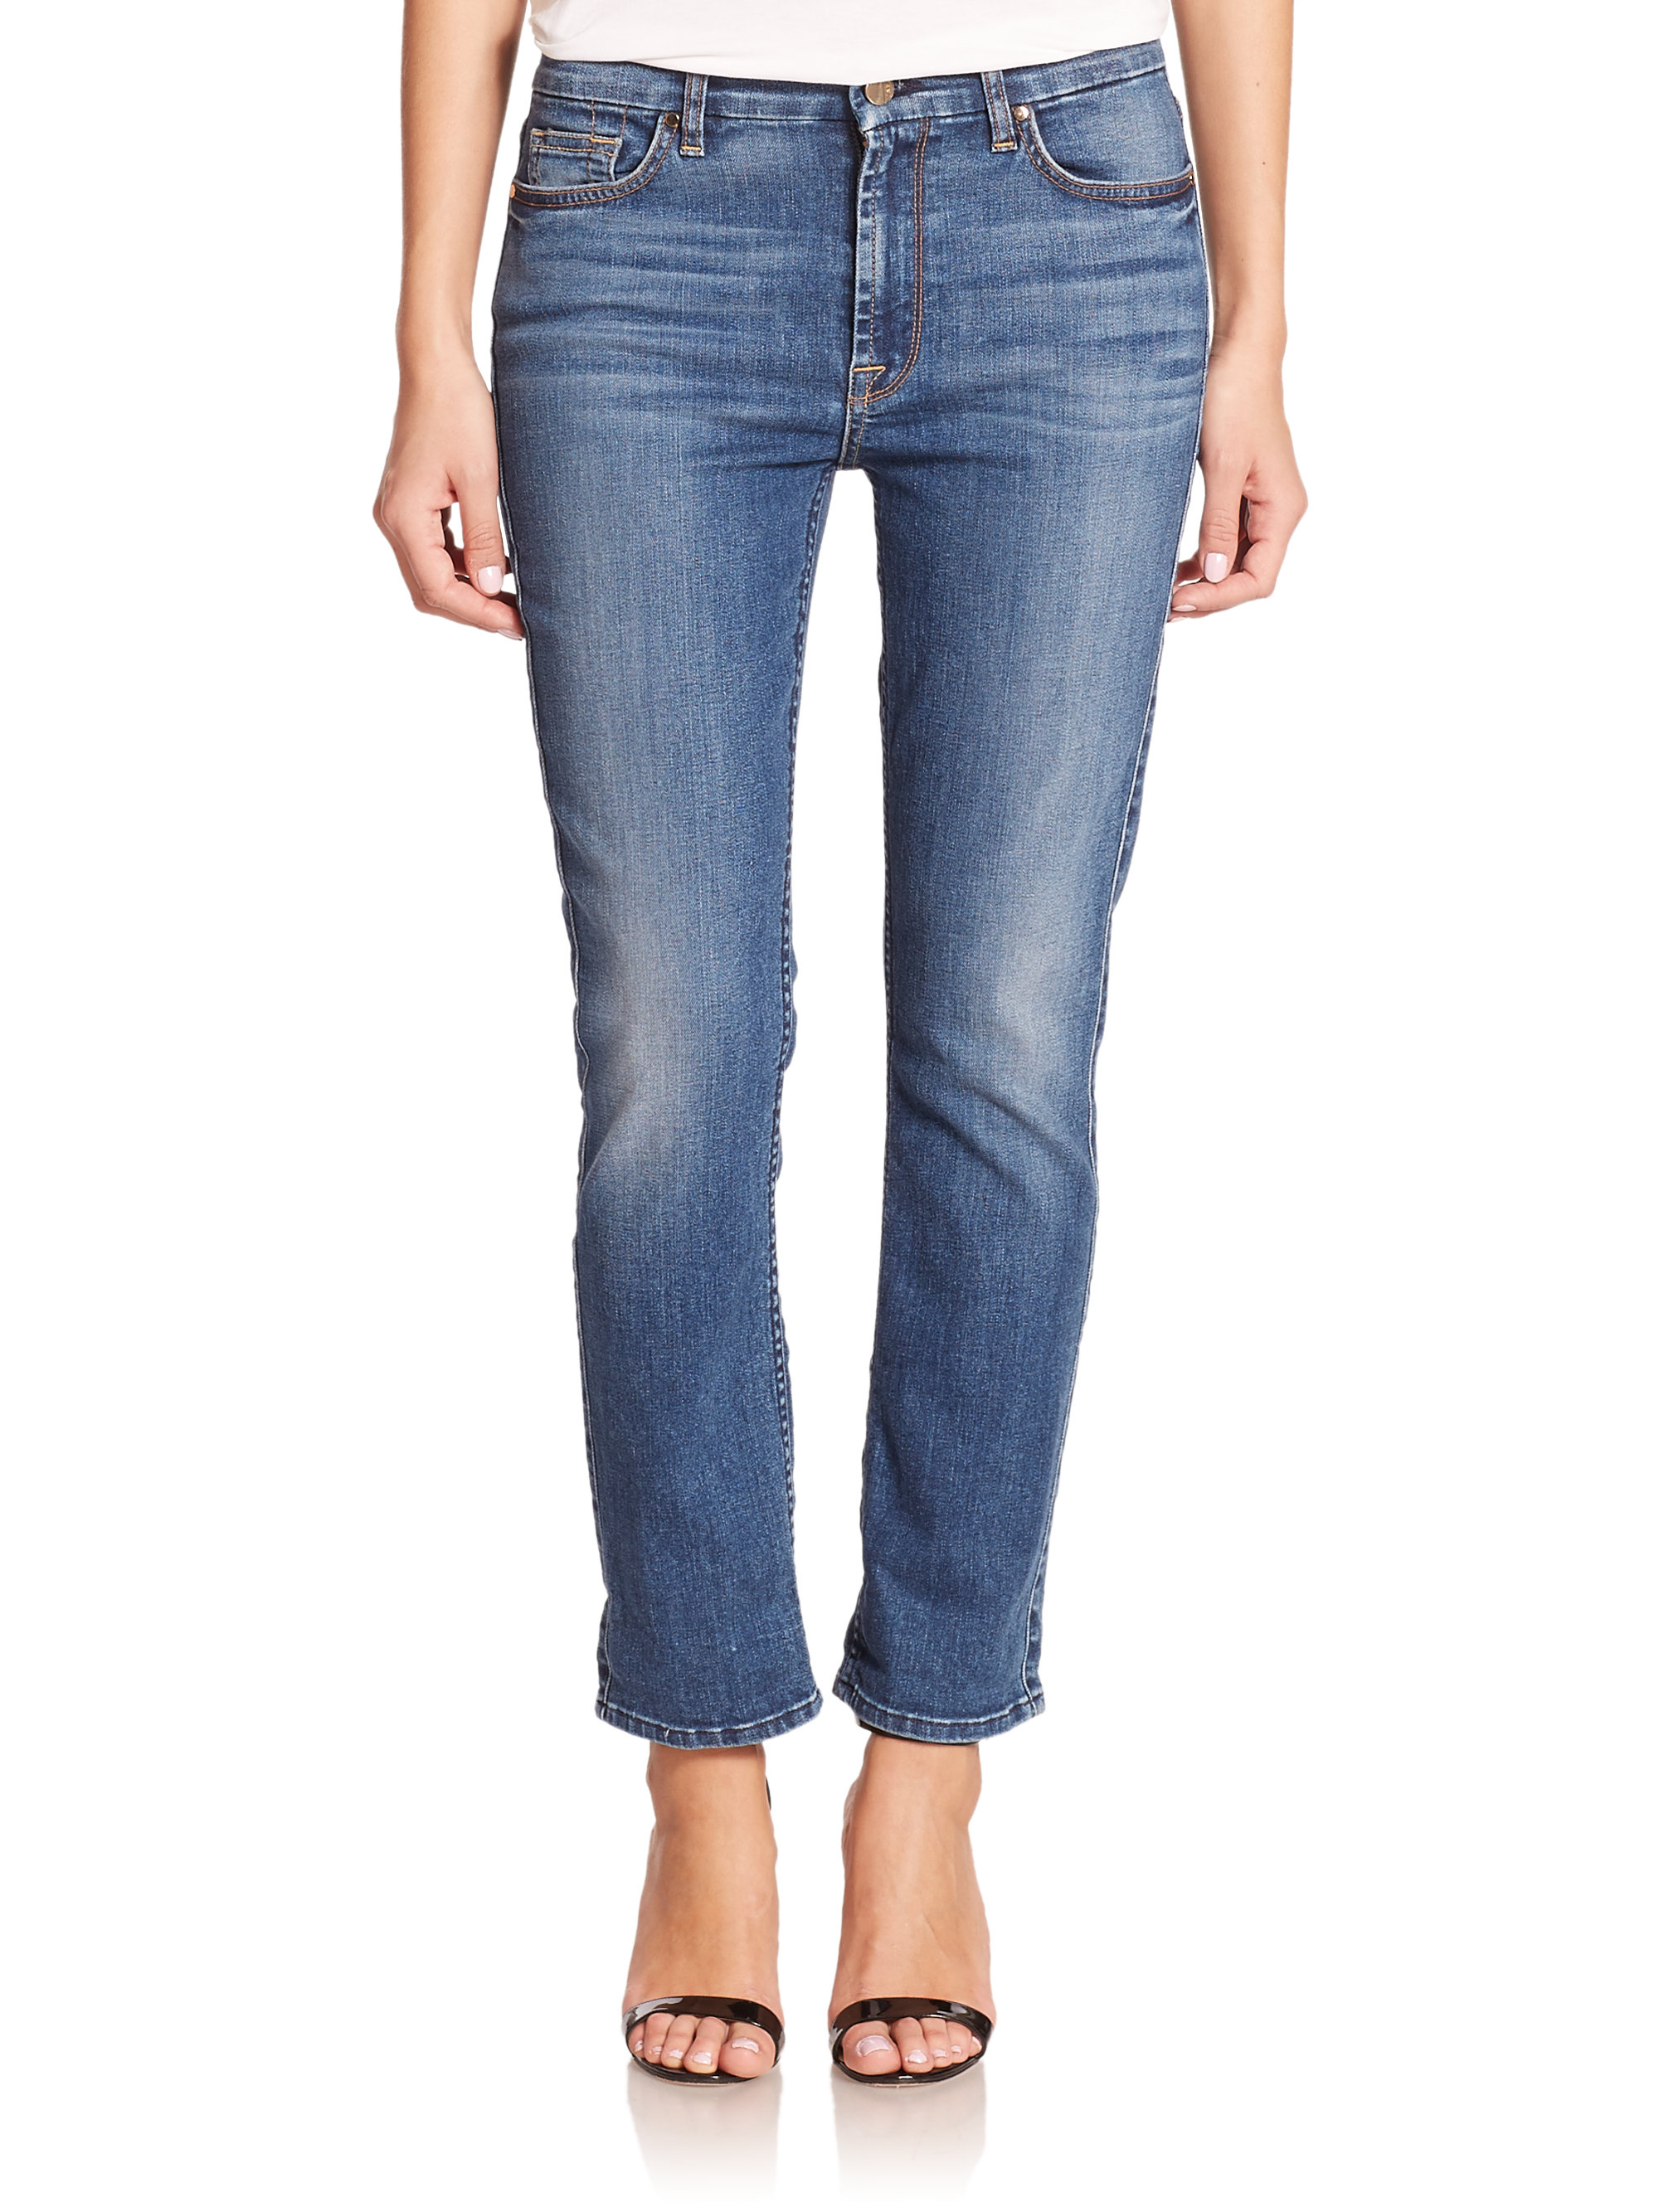 Current/Elliott's 'The Fling' jeans are a cleaned-up, slimmed-down take on the classic boyfriend style. Designed to be worn slung low on the hips, this dark-blue pair is fresh and flattering. Turn up the cuffs and wear yours with a bright-red blazer and black pumps.